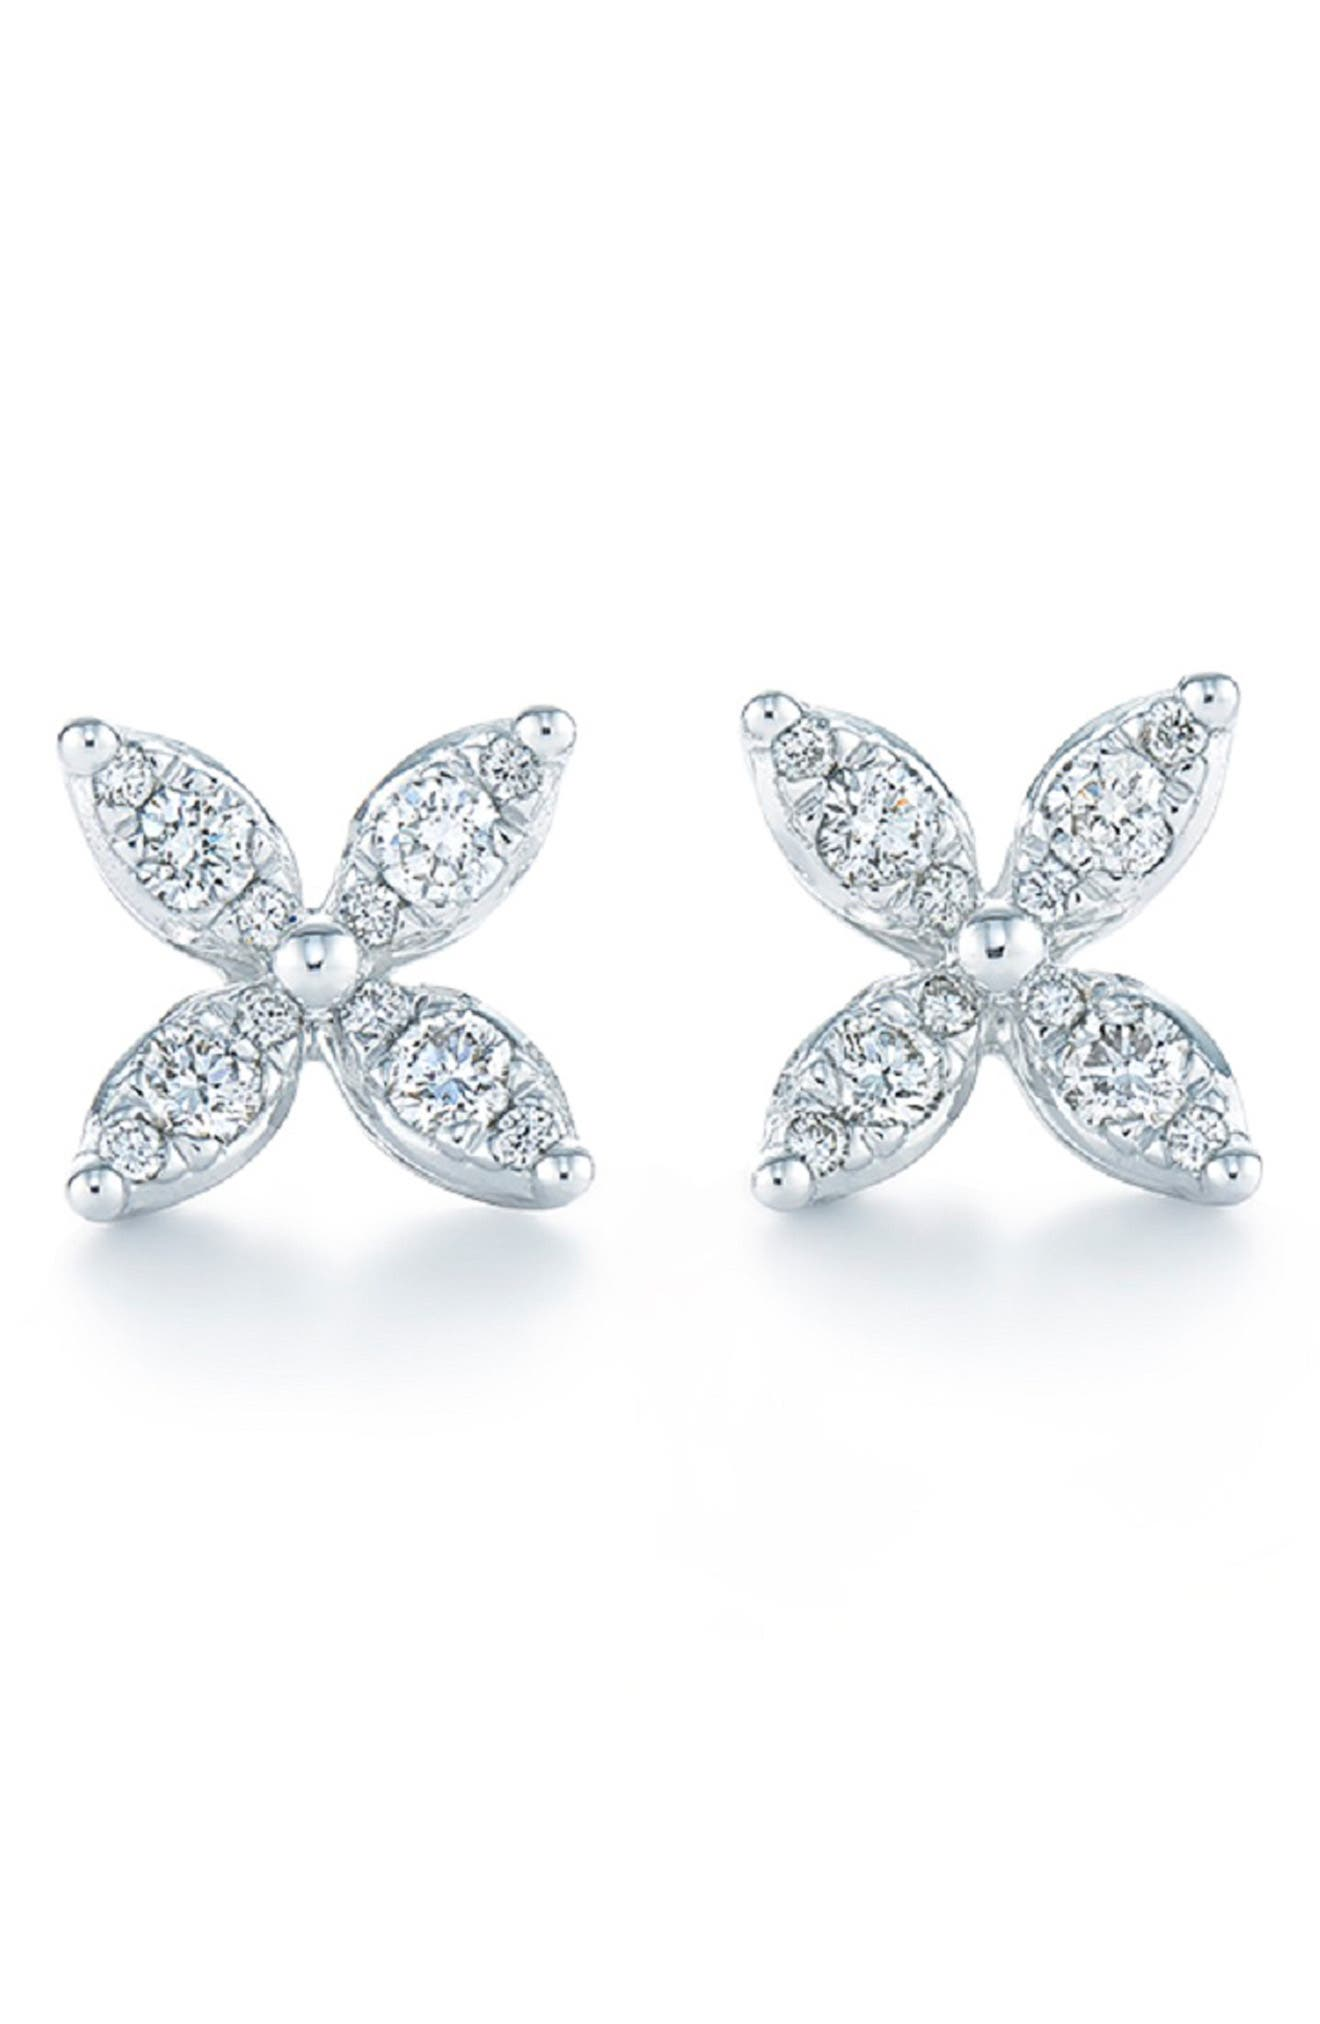 'Sunburst' Diamond Stud Earrings,                         Main,                         color, WHITE GOLD